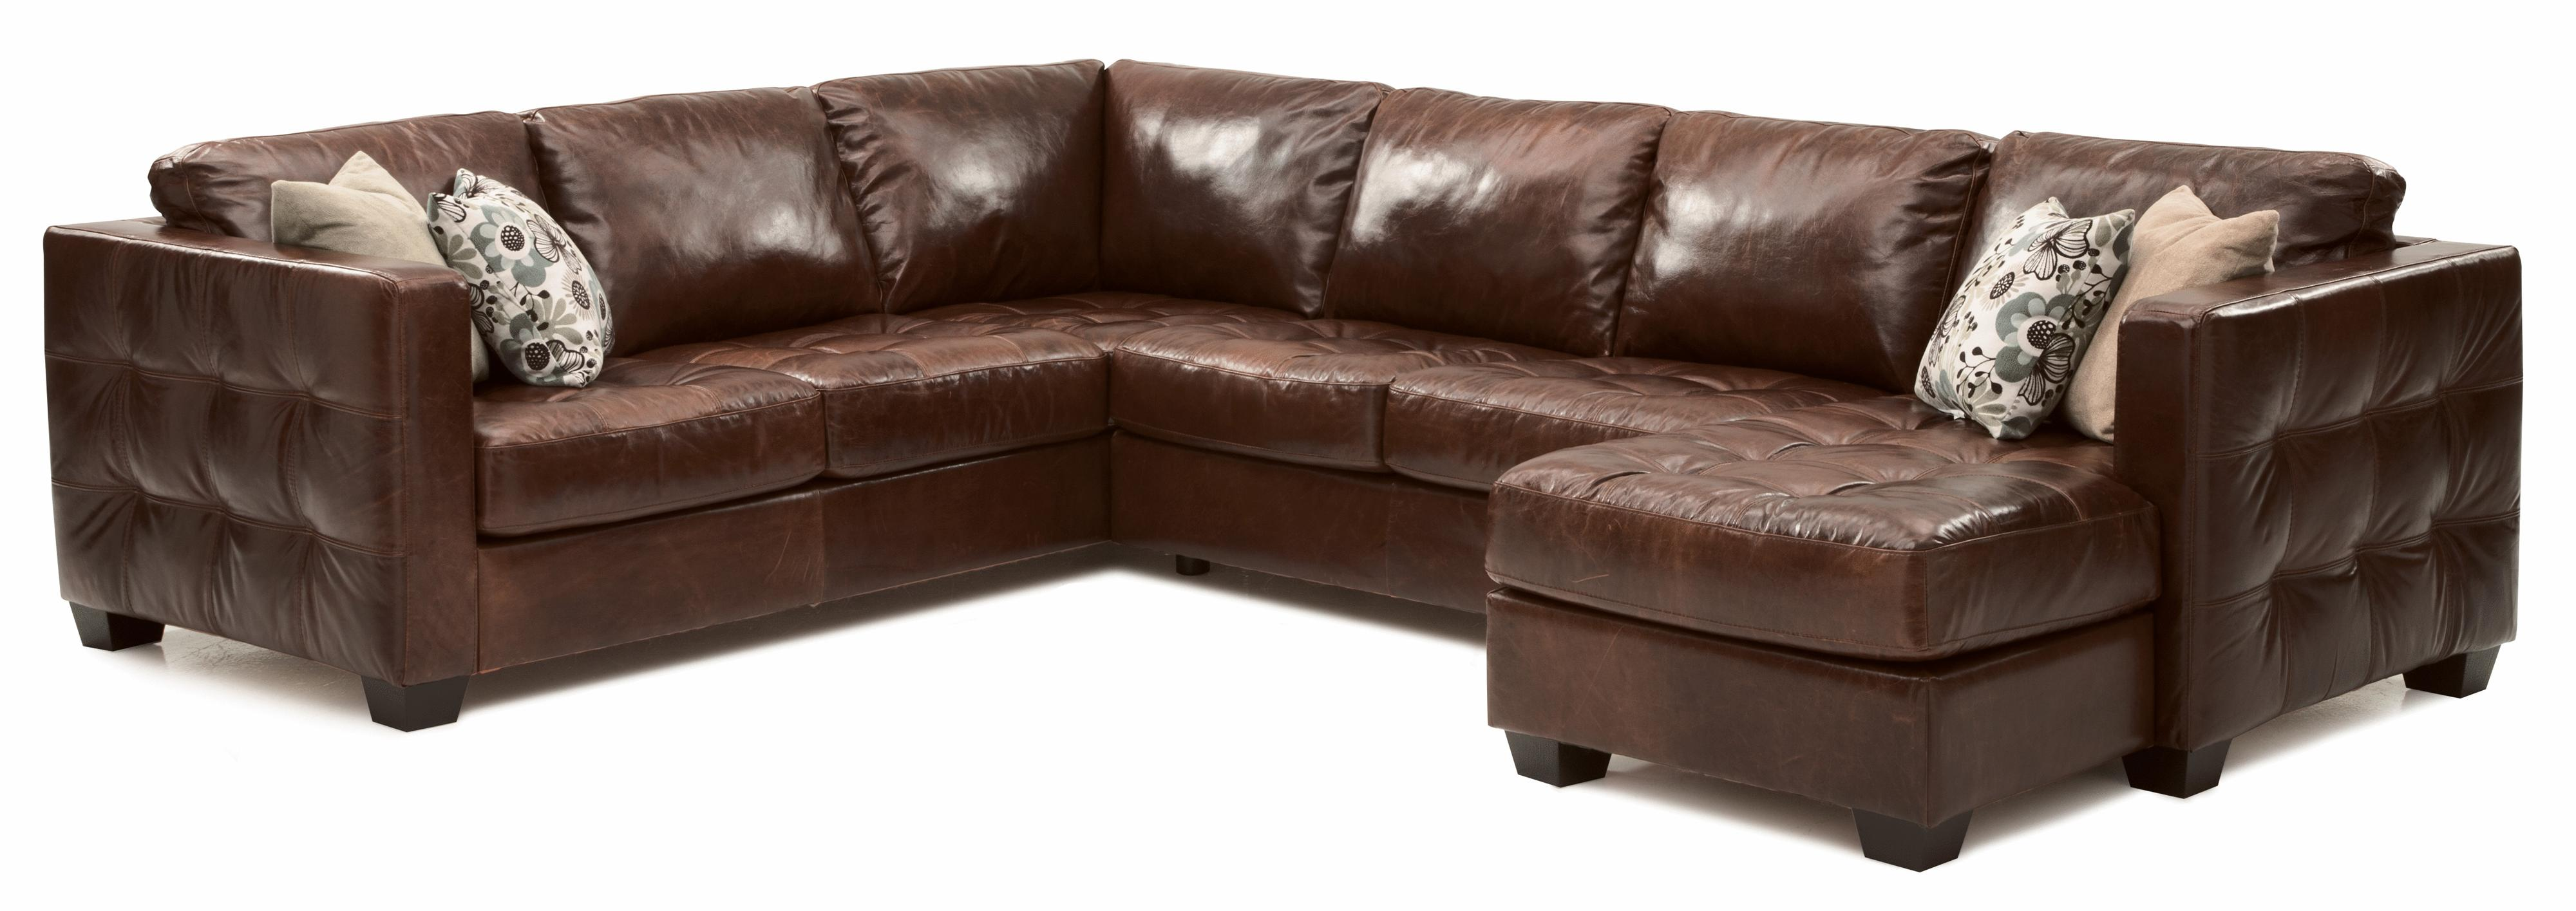 cloud track arm leather two seat cushion sofa art van chaise palliser barrett contemporary sectional with